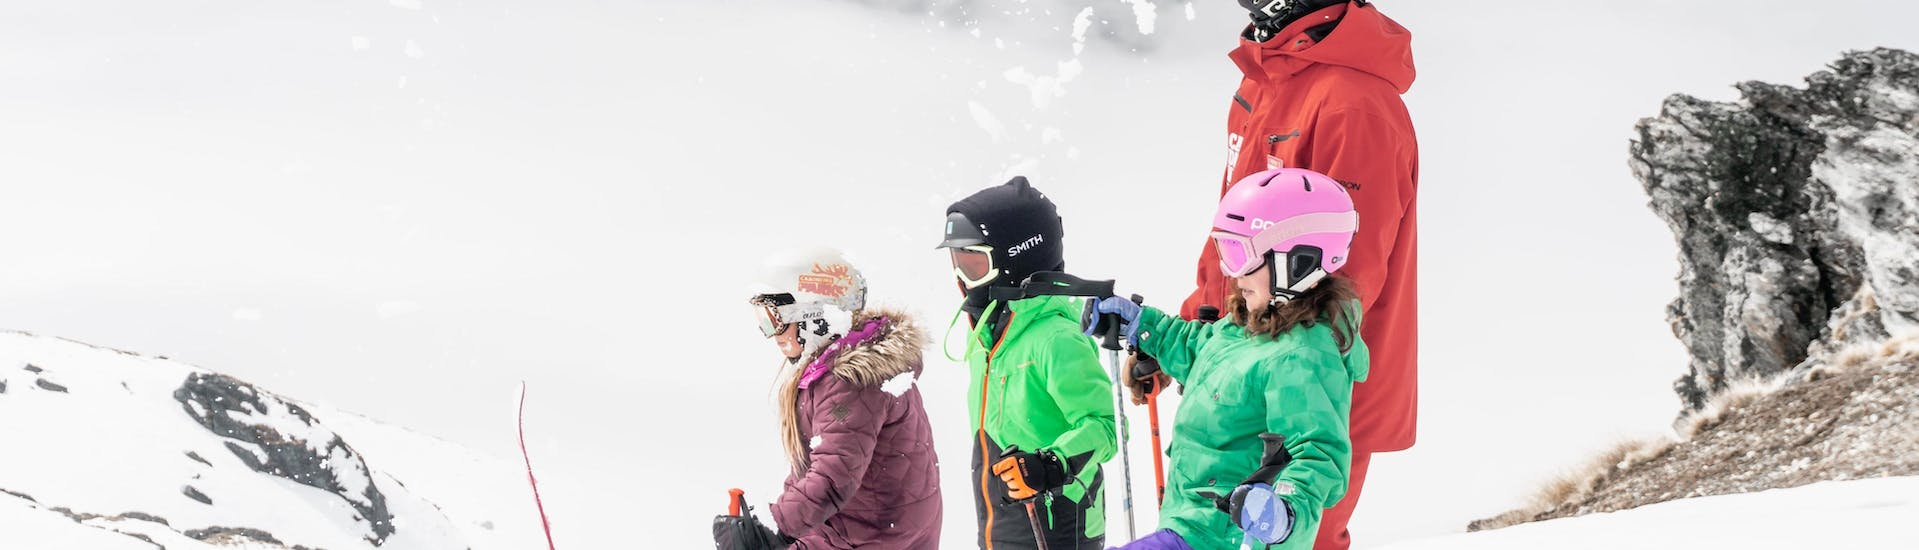 Kids Ski Lessons (5-17 years) - All Levels